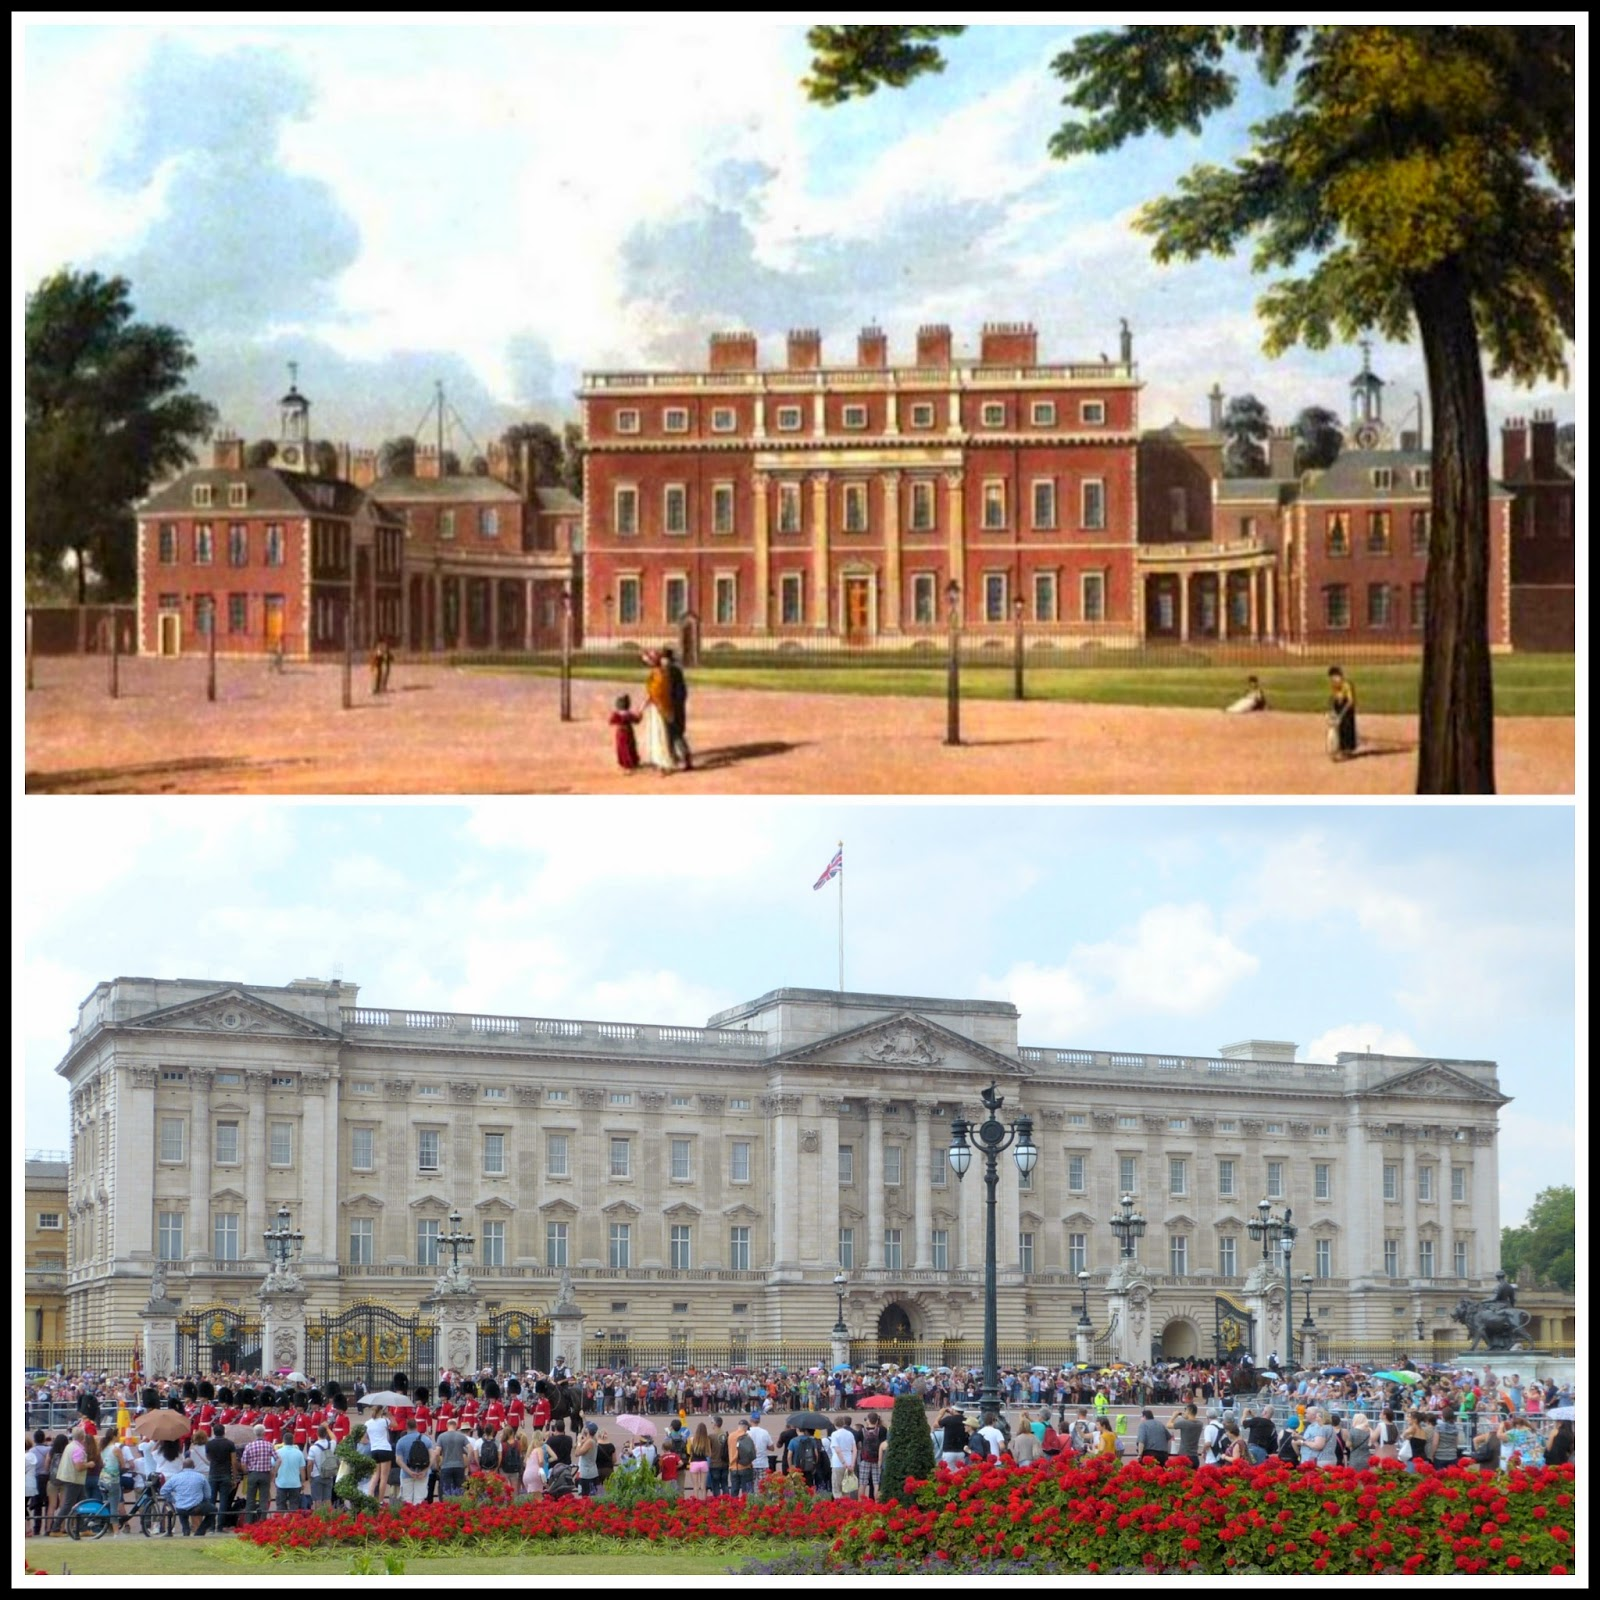 Top: Buckingham House from    The History of the Royal Residences by WH Pyne (1819)  Bottom: Buckingham Palace today © Andrew Knowles